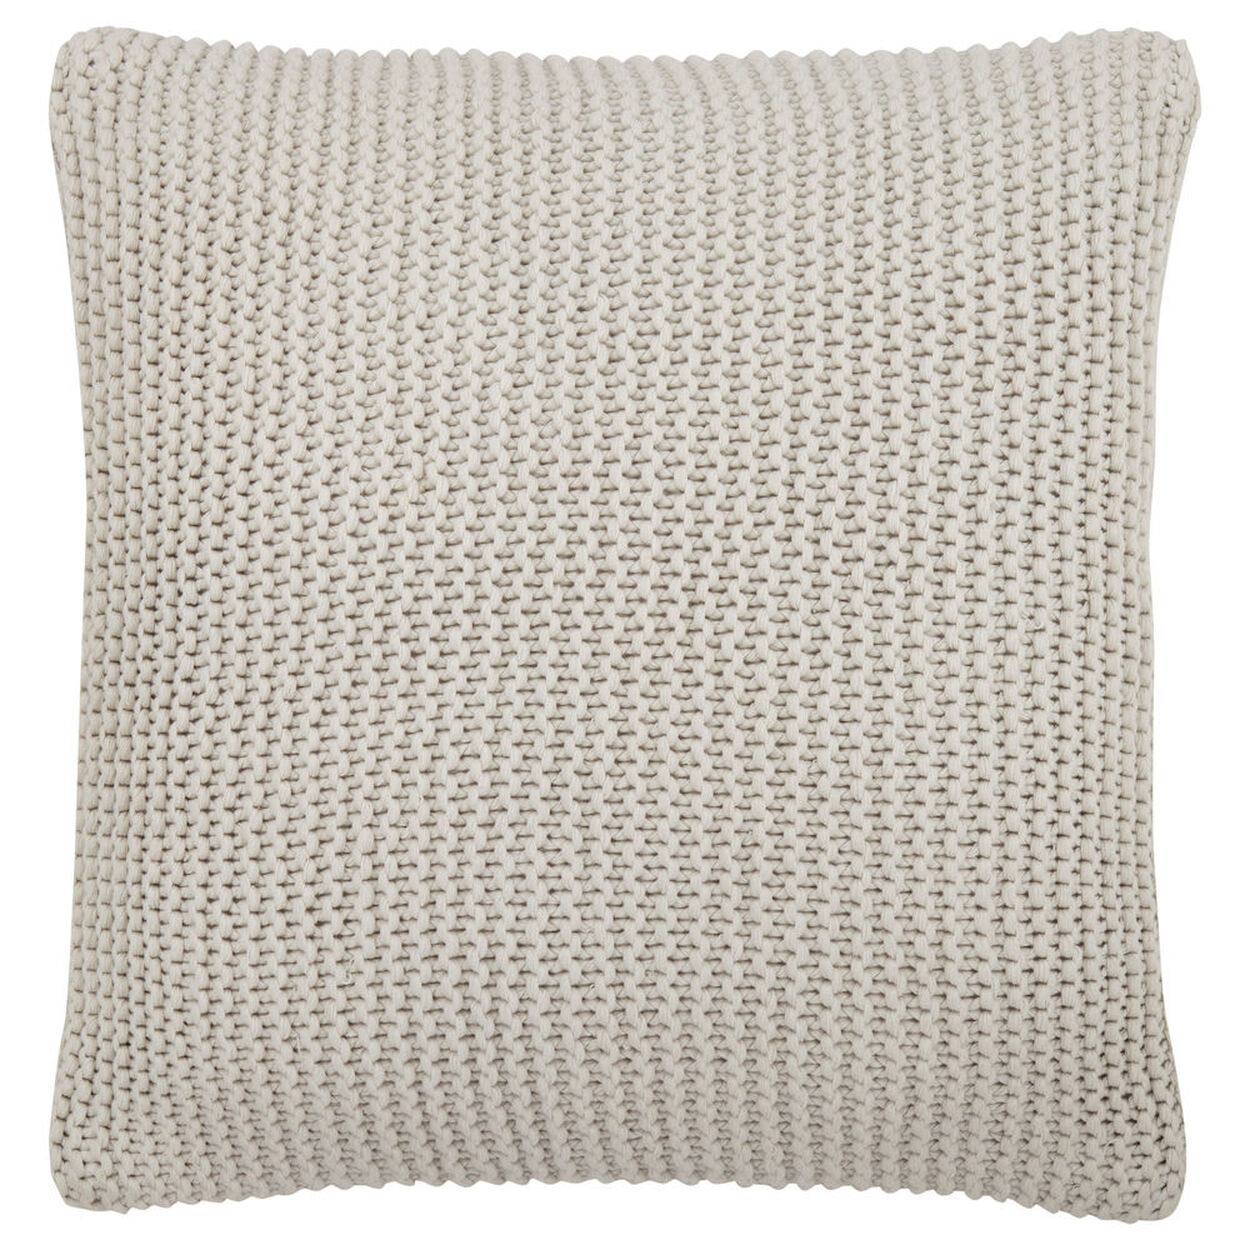 "Kinge Knitted Decorative Pillow 20"" X 20"""